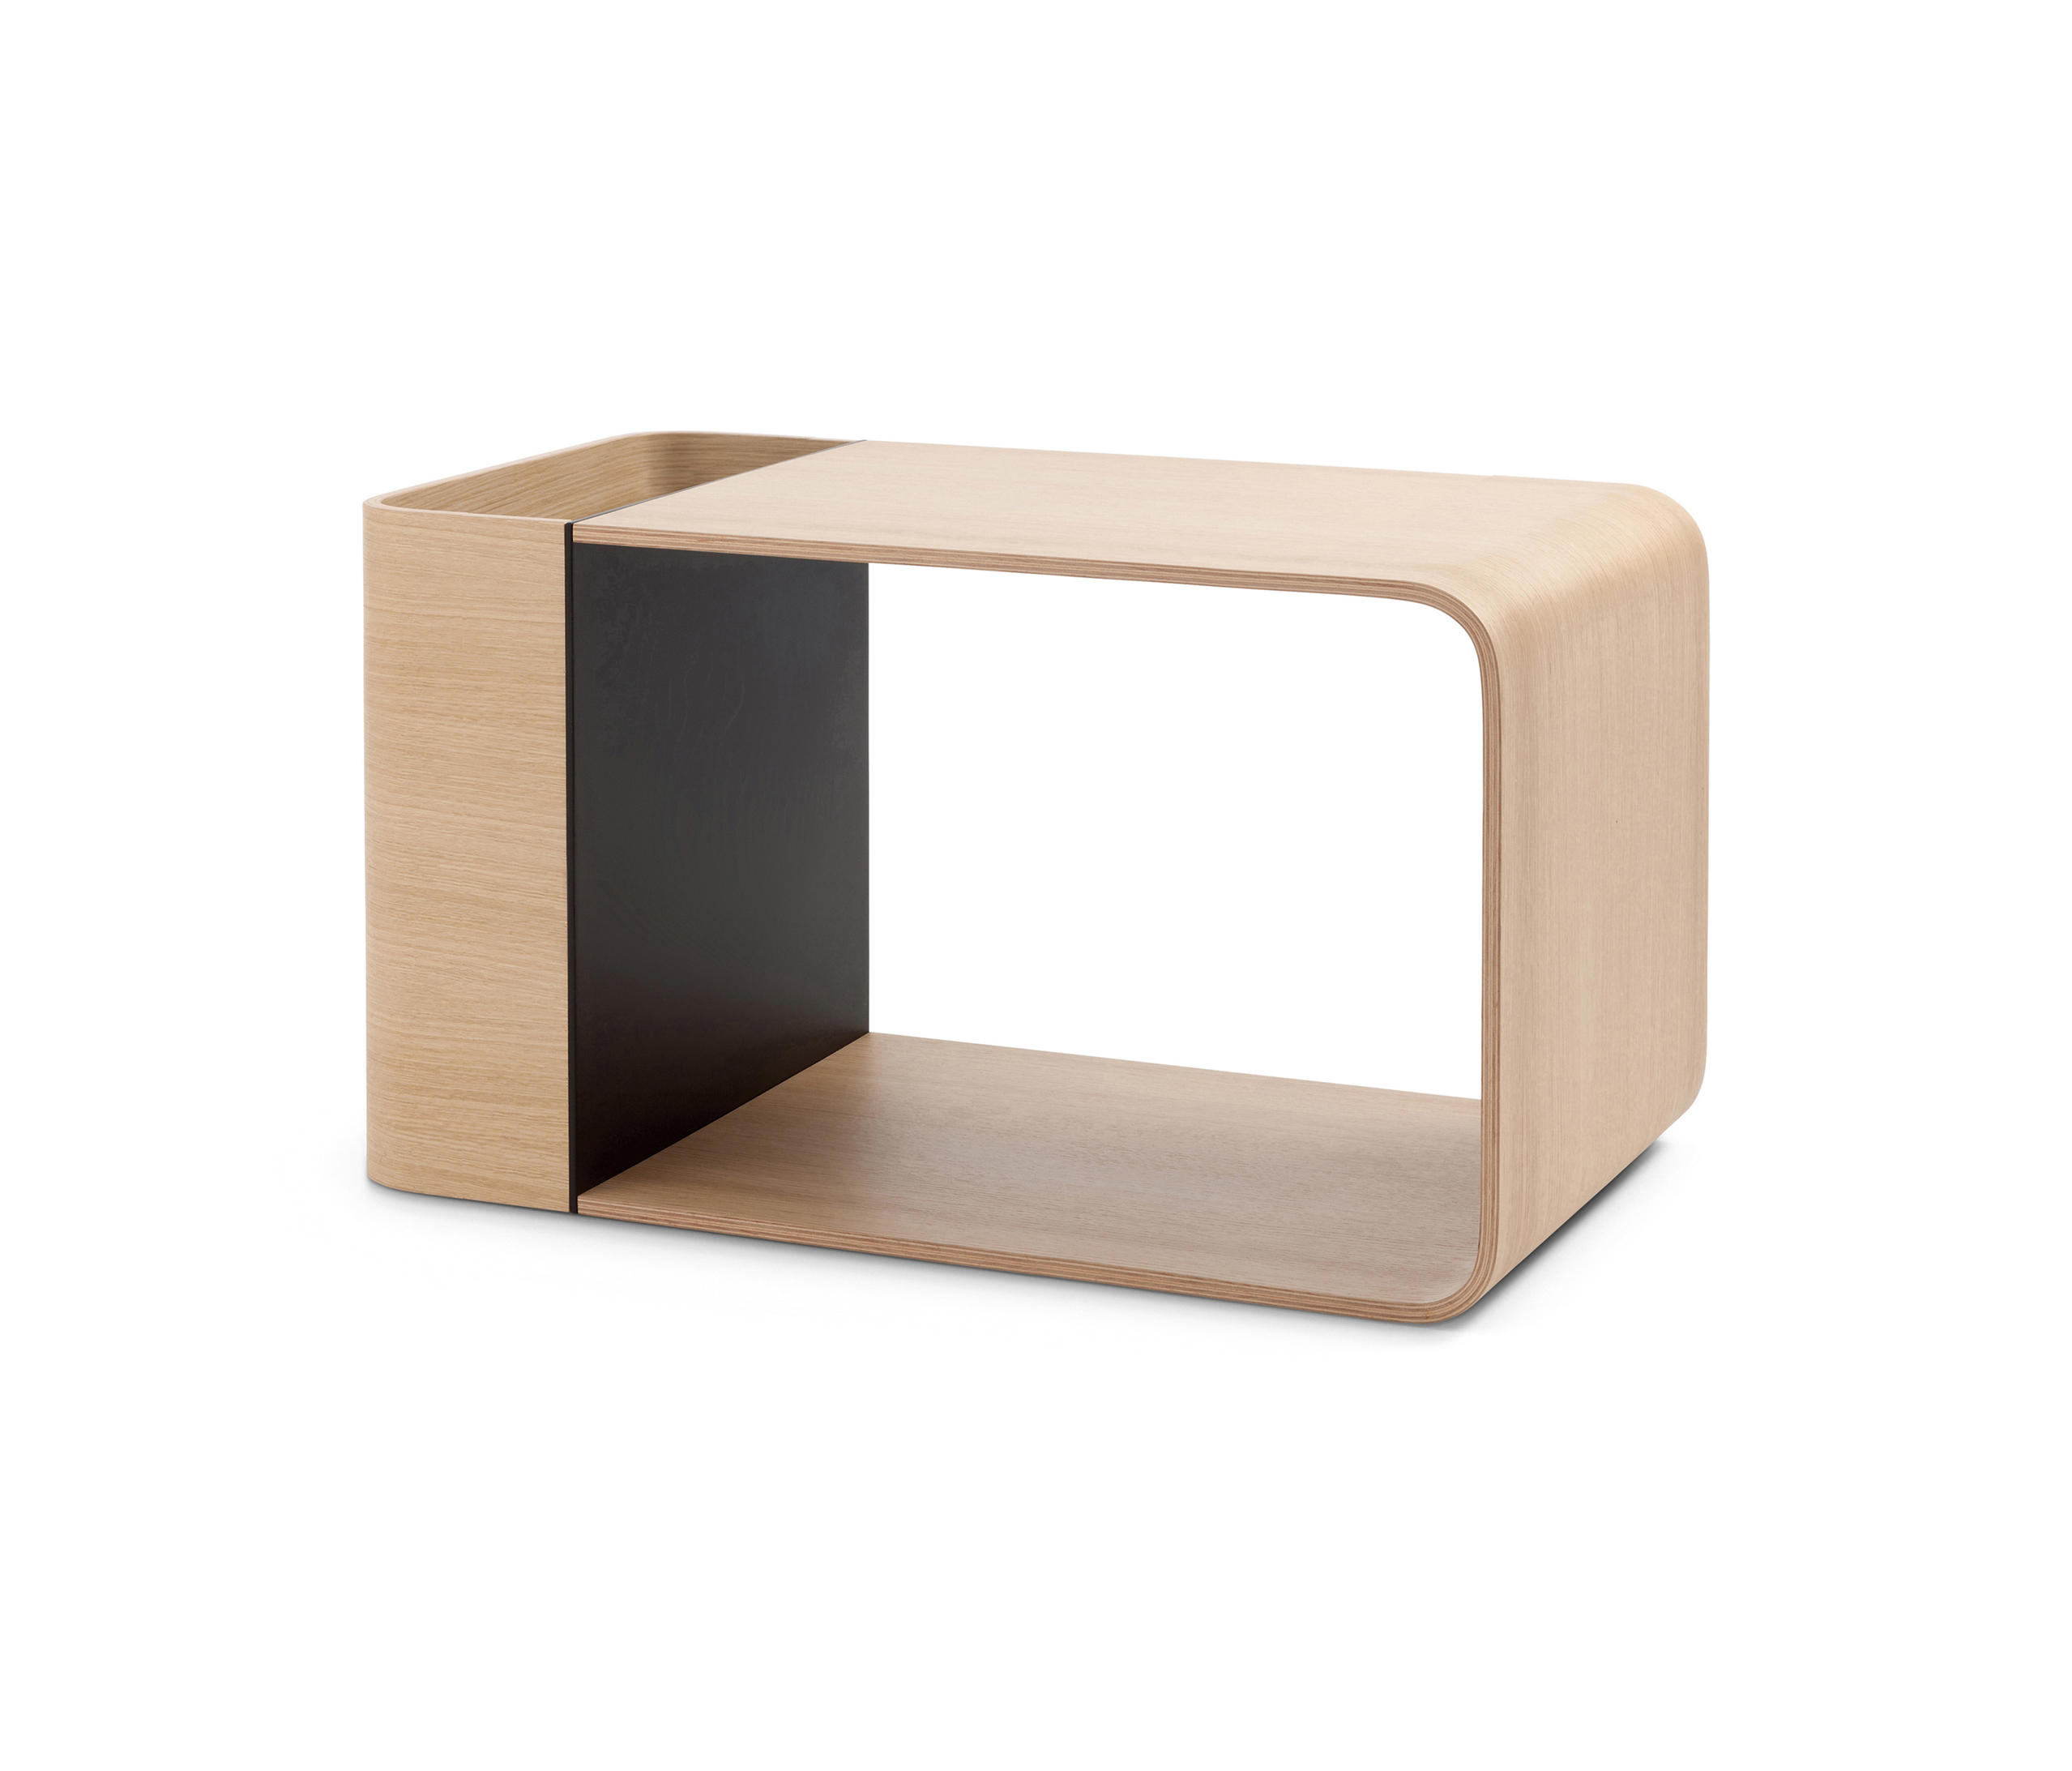 Rolf benz 974 side tables from rolf benz architonic for Rolf benz